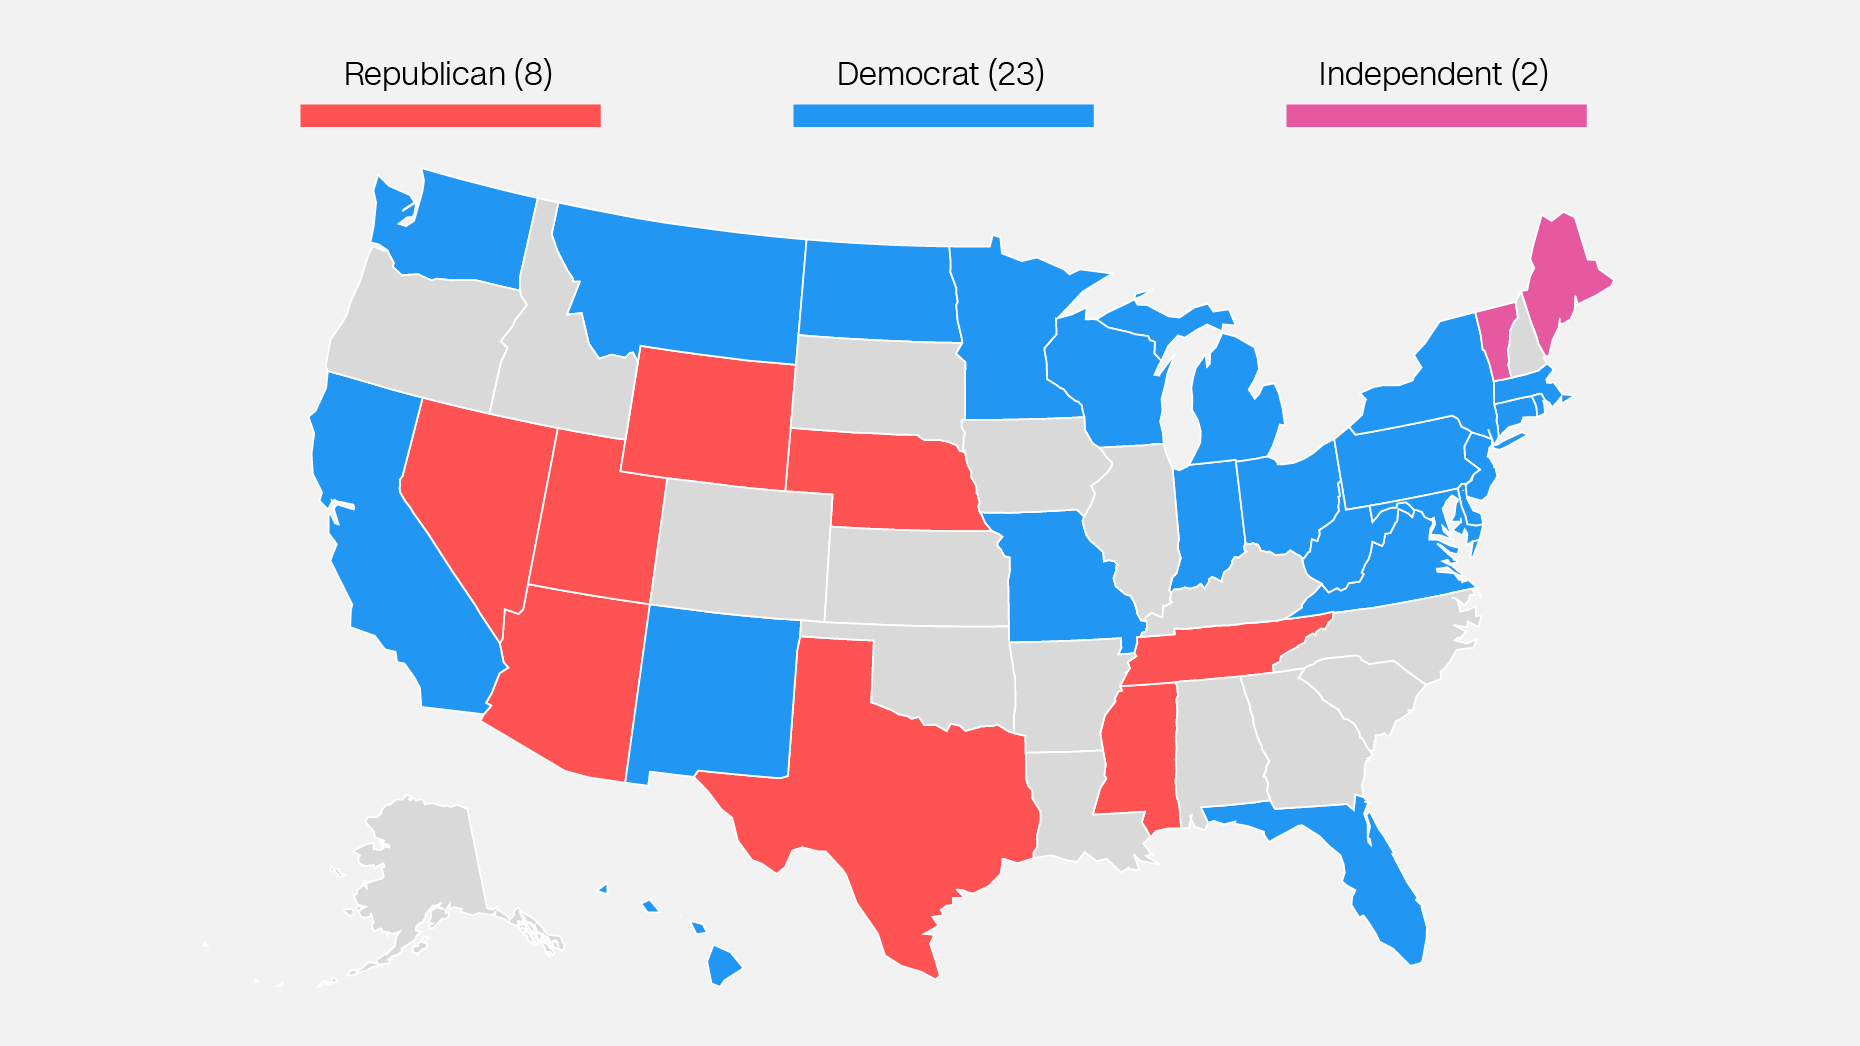 Us Map Democrat Vs Republican 2018 The 2018 Senate map is starting to look less awful for Democrats